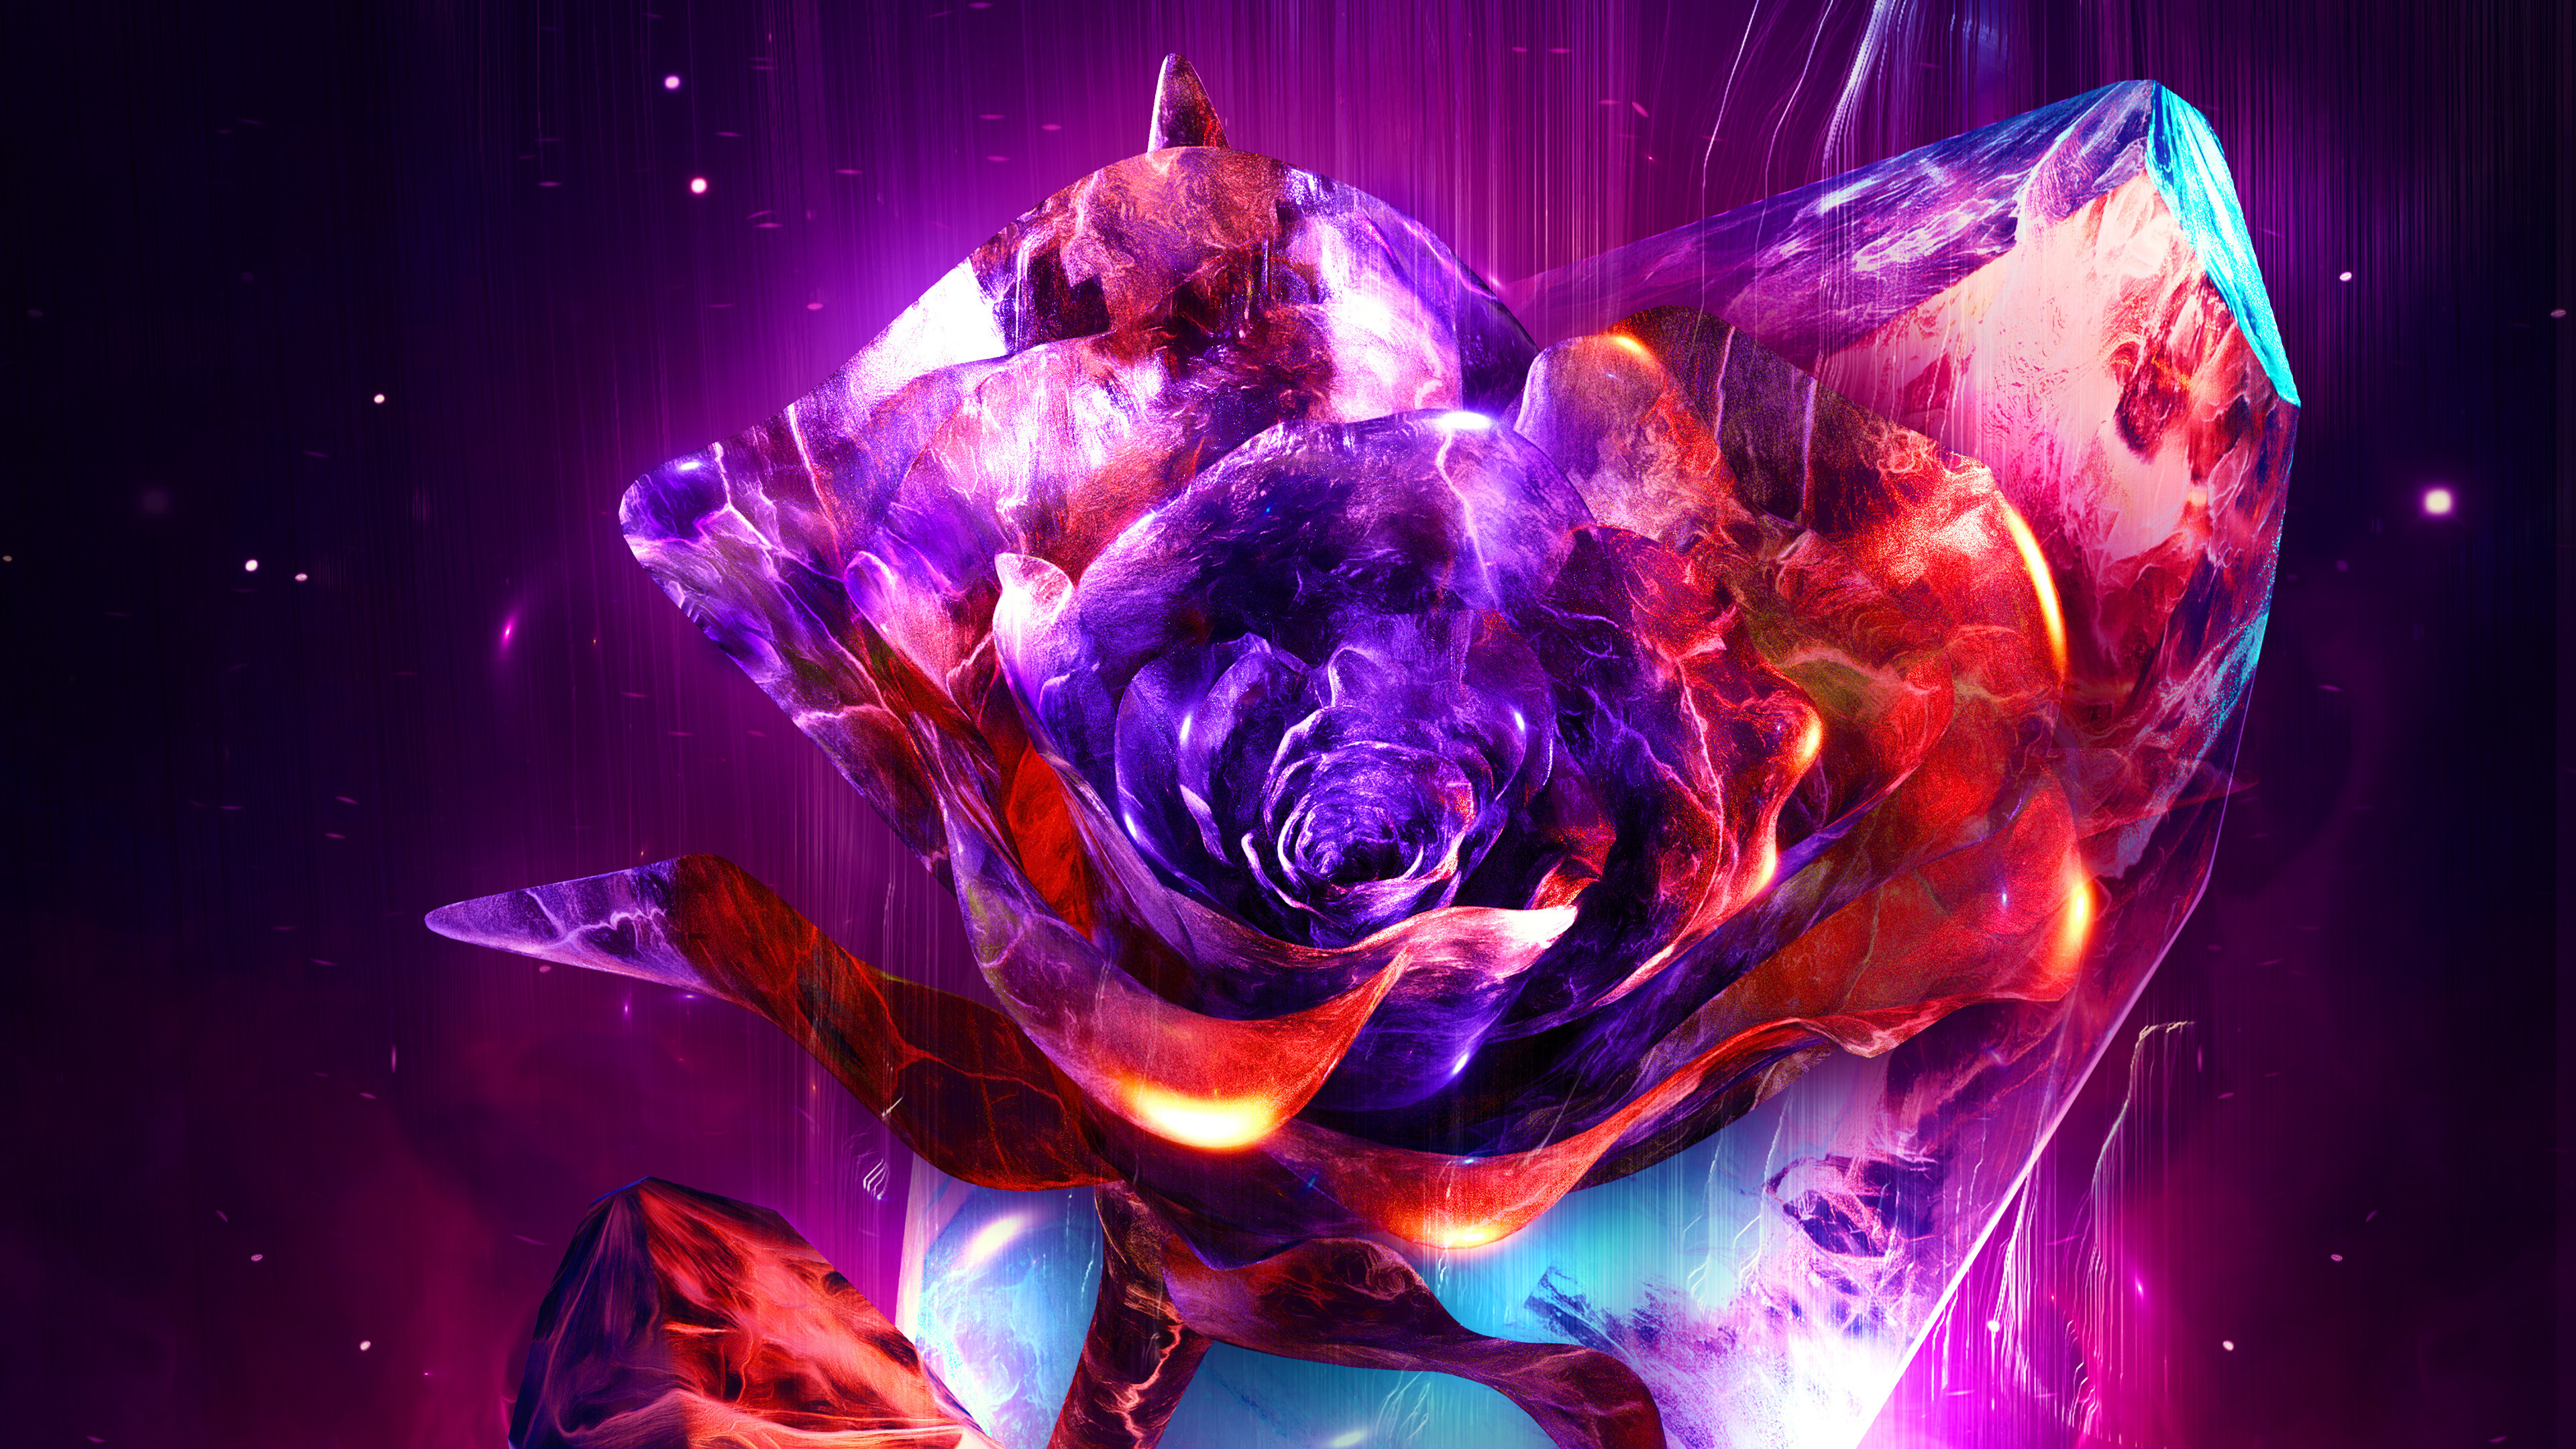 rose abstract 4k 1539371611 - Rose Abstract 4k - rose wallpapers, hd-wallpapers, digital art wallpapers, behance wallpapers, artwork wallpapers, artist wallpapers, abstract wallpapers, 4k-wallpapers